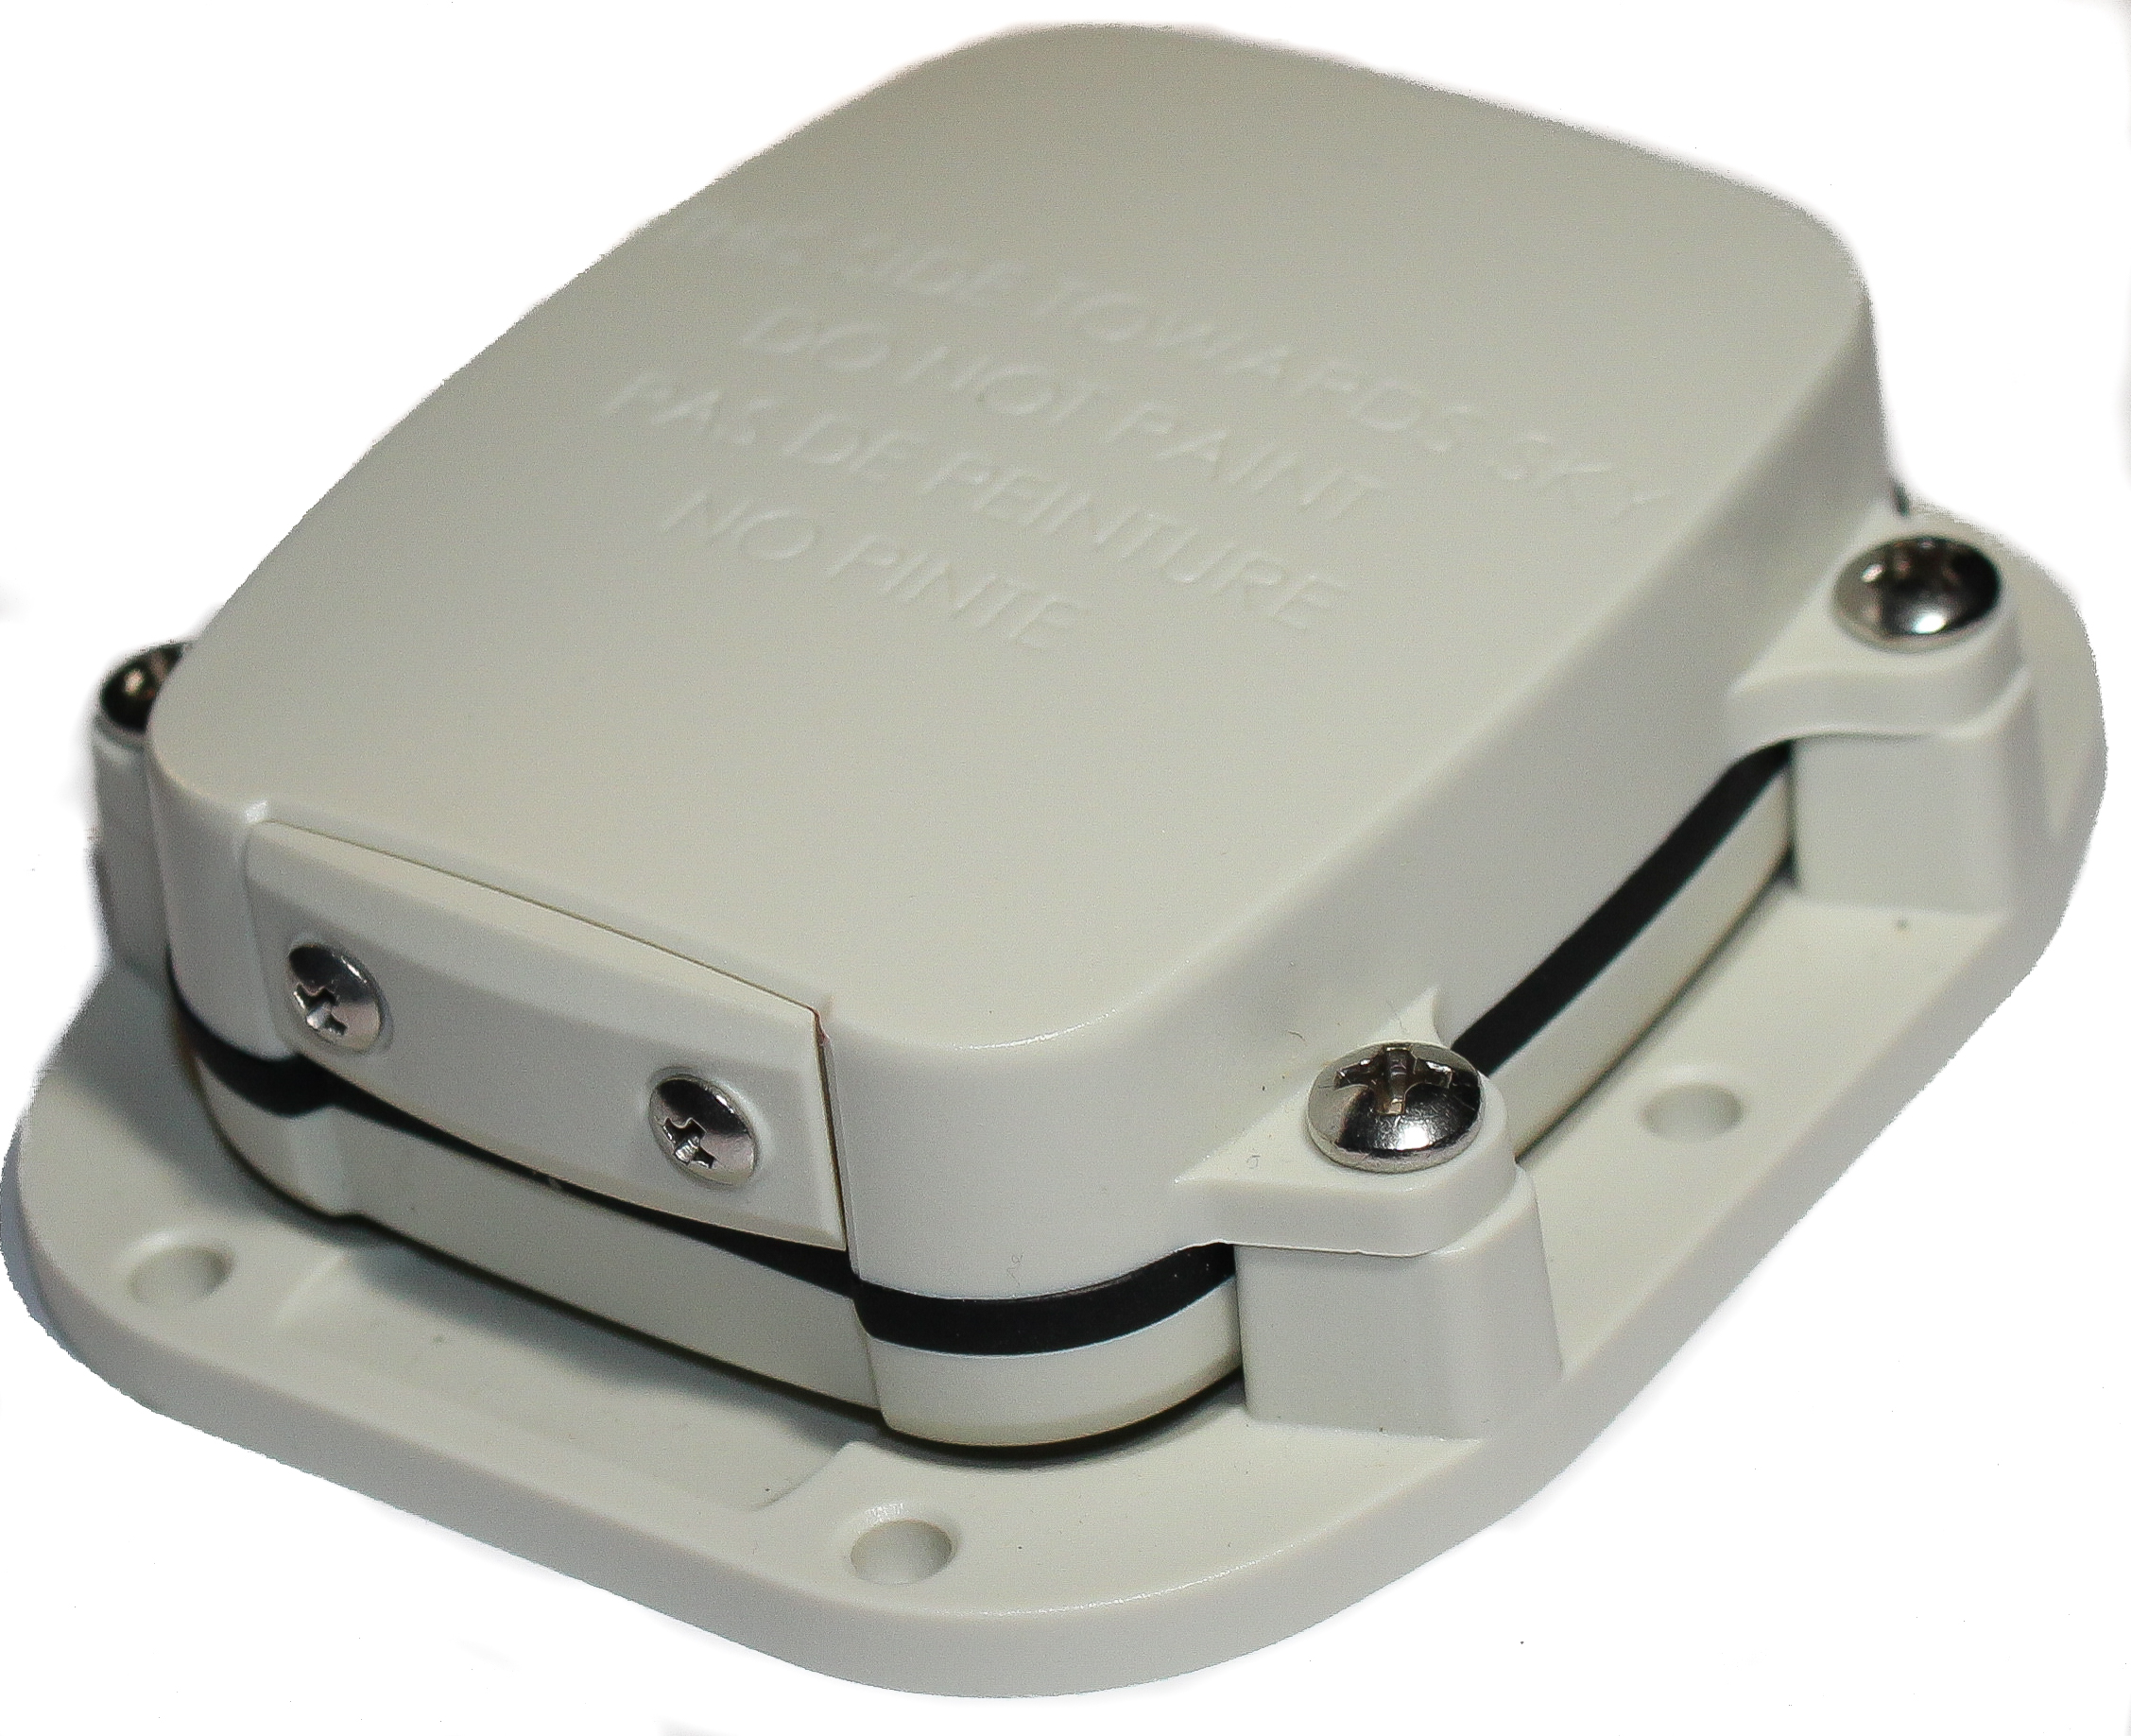 Our Orbit pro is a satellite only tracker, with coverage in even the most remote regions of the world. Easy to install with industrial adhesive or the screws and mounts provided. Lasts over 1.5 years running on just 4 AAA batteries and can also be powered externally by 5-22 Volts. Custom reporting times along with optional alerts for when the asset is moving. The Orbit Pro is the best choice for tracking shipping containers, boats, trailers and vehicles worldwide regardless of cellular coverage.